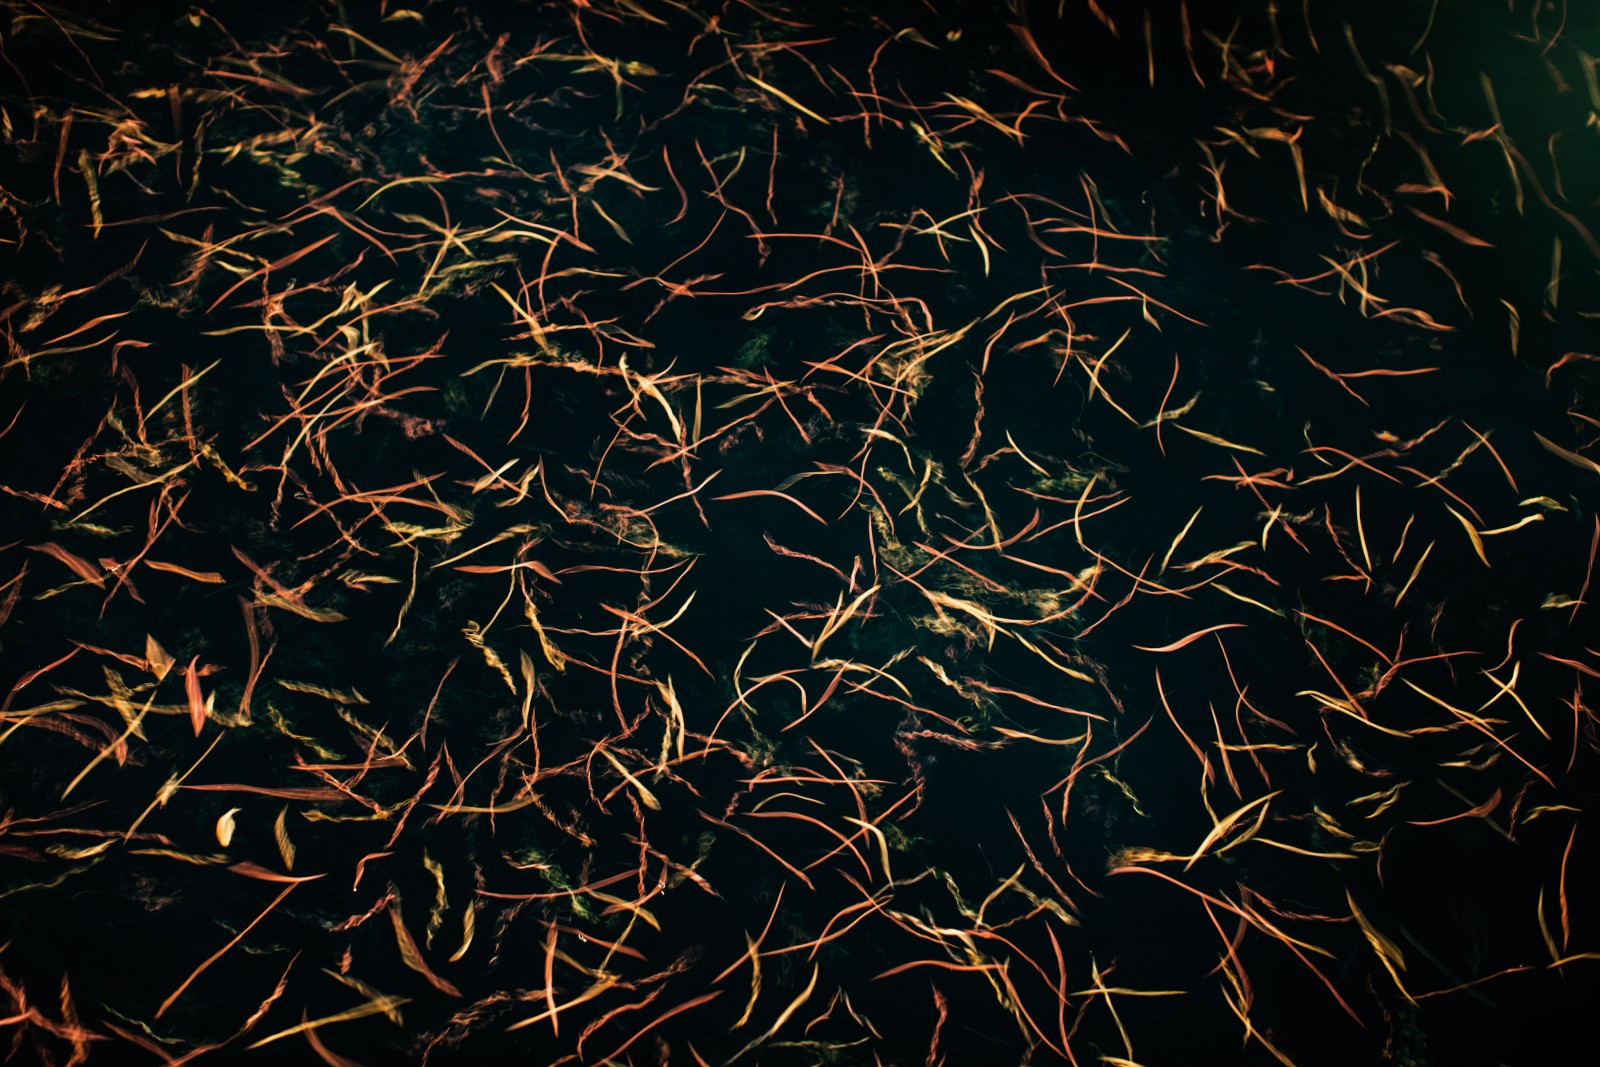 Like moths to a flame, polycheate worms (Nereis spp.) gather beneath the loom of a night light hung from the stern of the ship. Scientists had hoped to attract light-sensitive juvenile and larval fish, but found a massive aggregation of the four-centimetre worms instead. Normally living in burrows in the seafloor, both sexes swim to the surface under the cover of darkness, using powerful pheromones to synchronise this behaviour. There they will spawn, releasing gametes and sperm in unison and en masse to increase reproductive success and reduce the risk of predation.